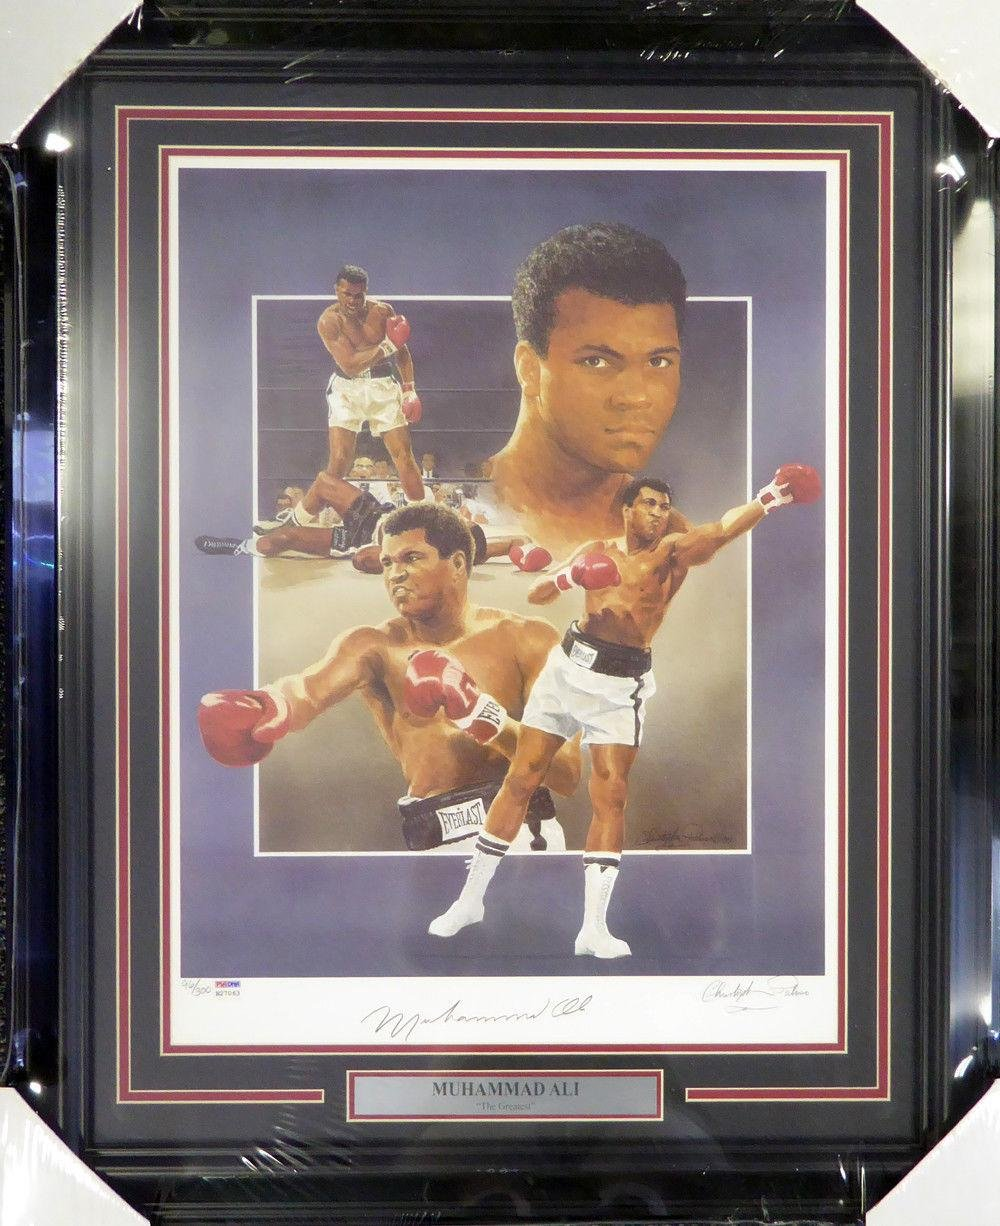 Muhammad Ali Autographed Framed 18x24 Lithograph Photo Auto Grade 10 B27063 PSA/DNA Certified Autographed Boxing Art